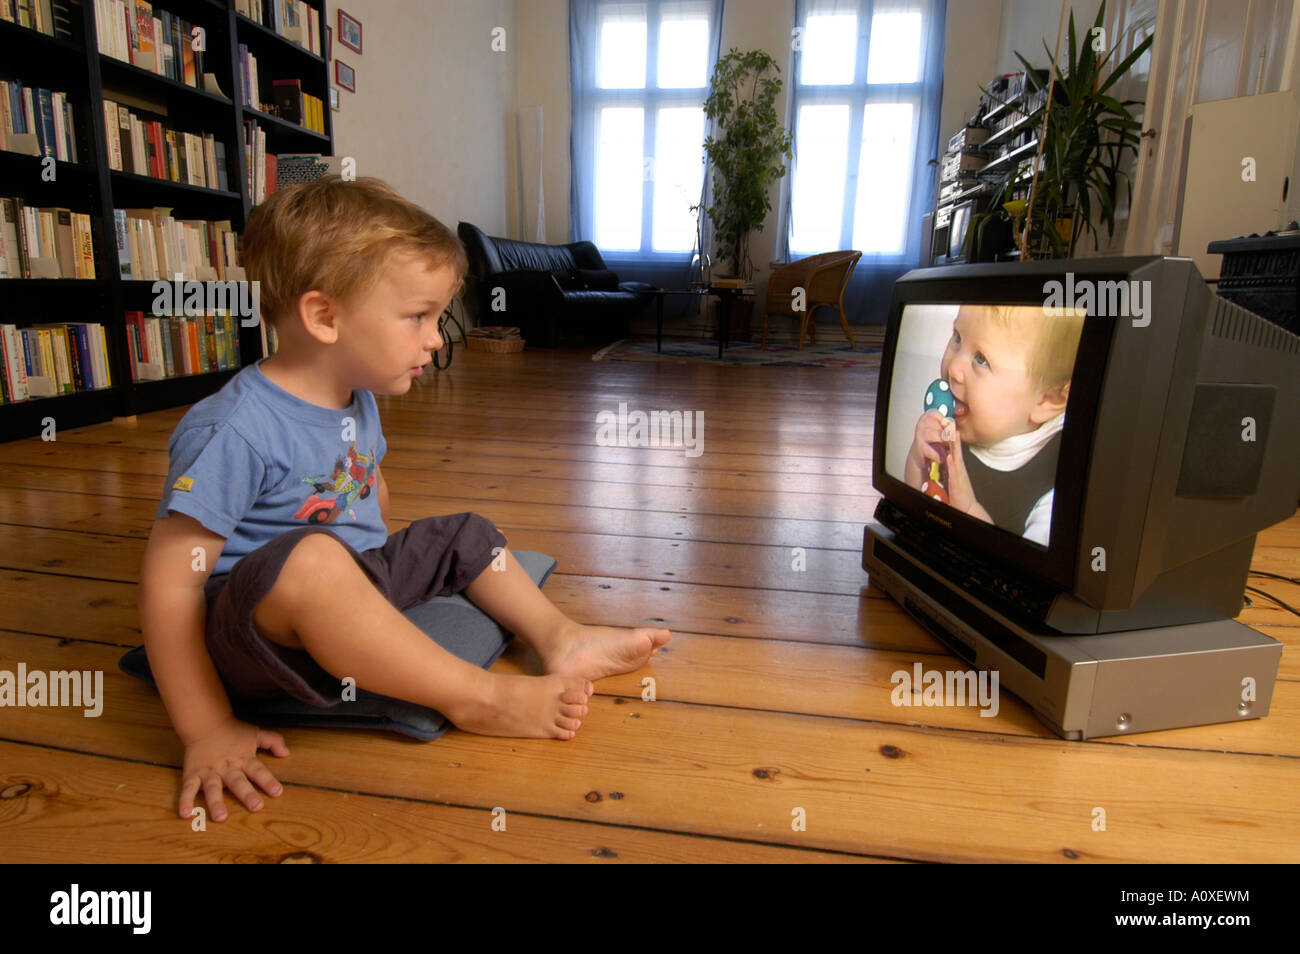 Child watching a video - Stock Image